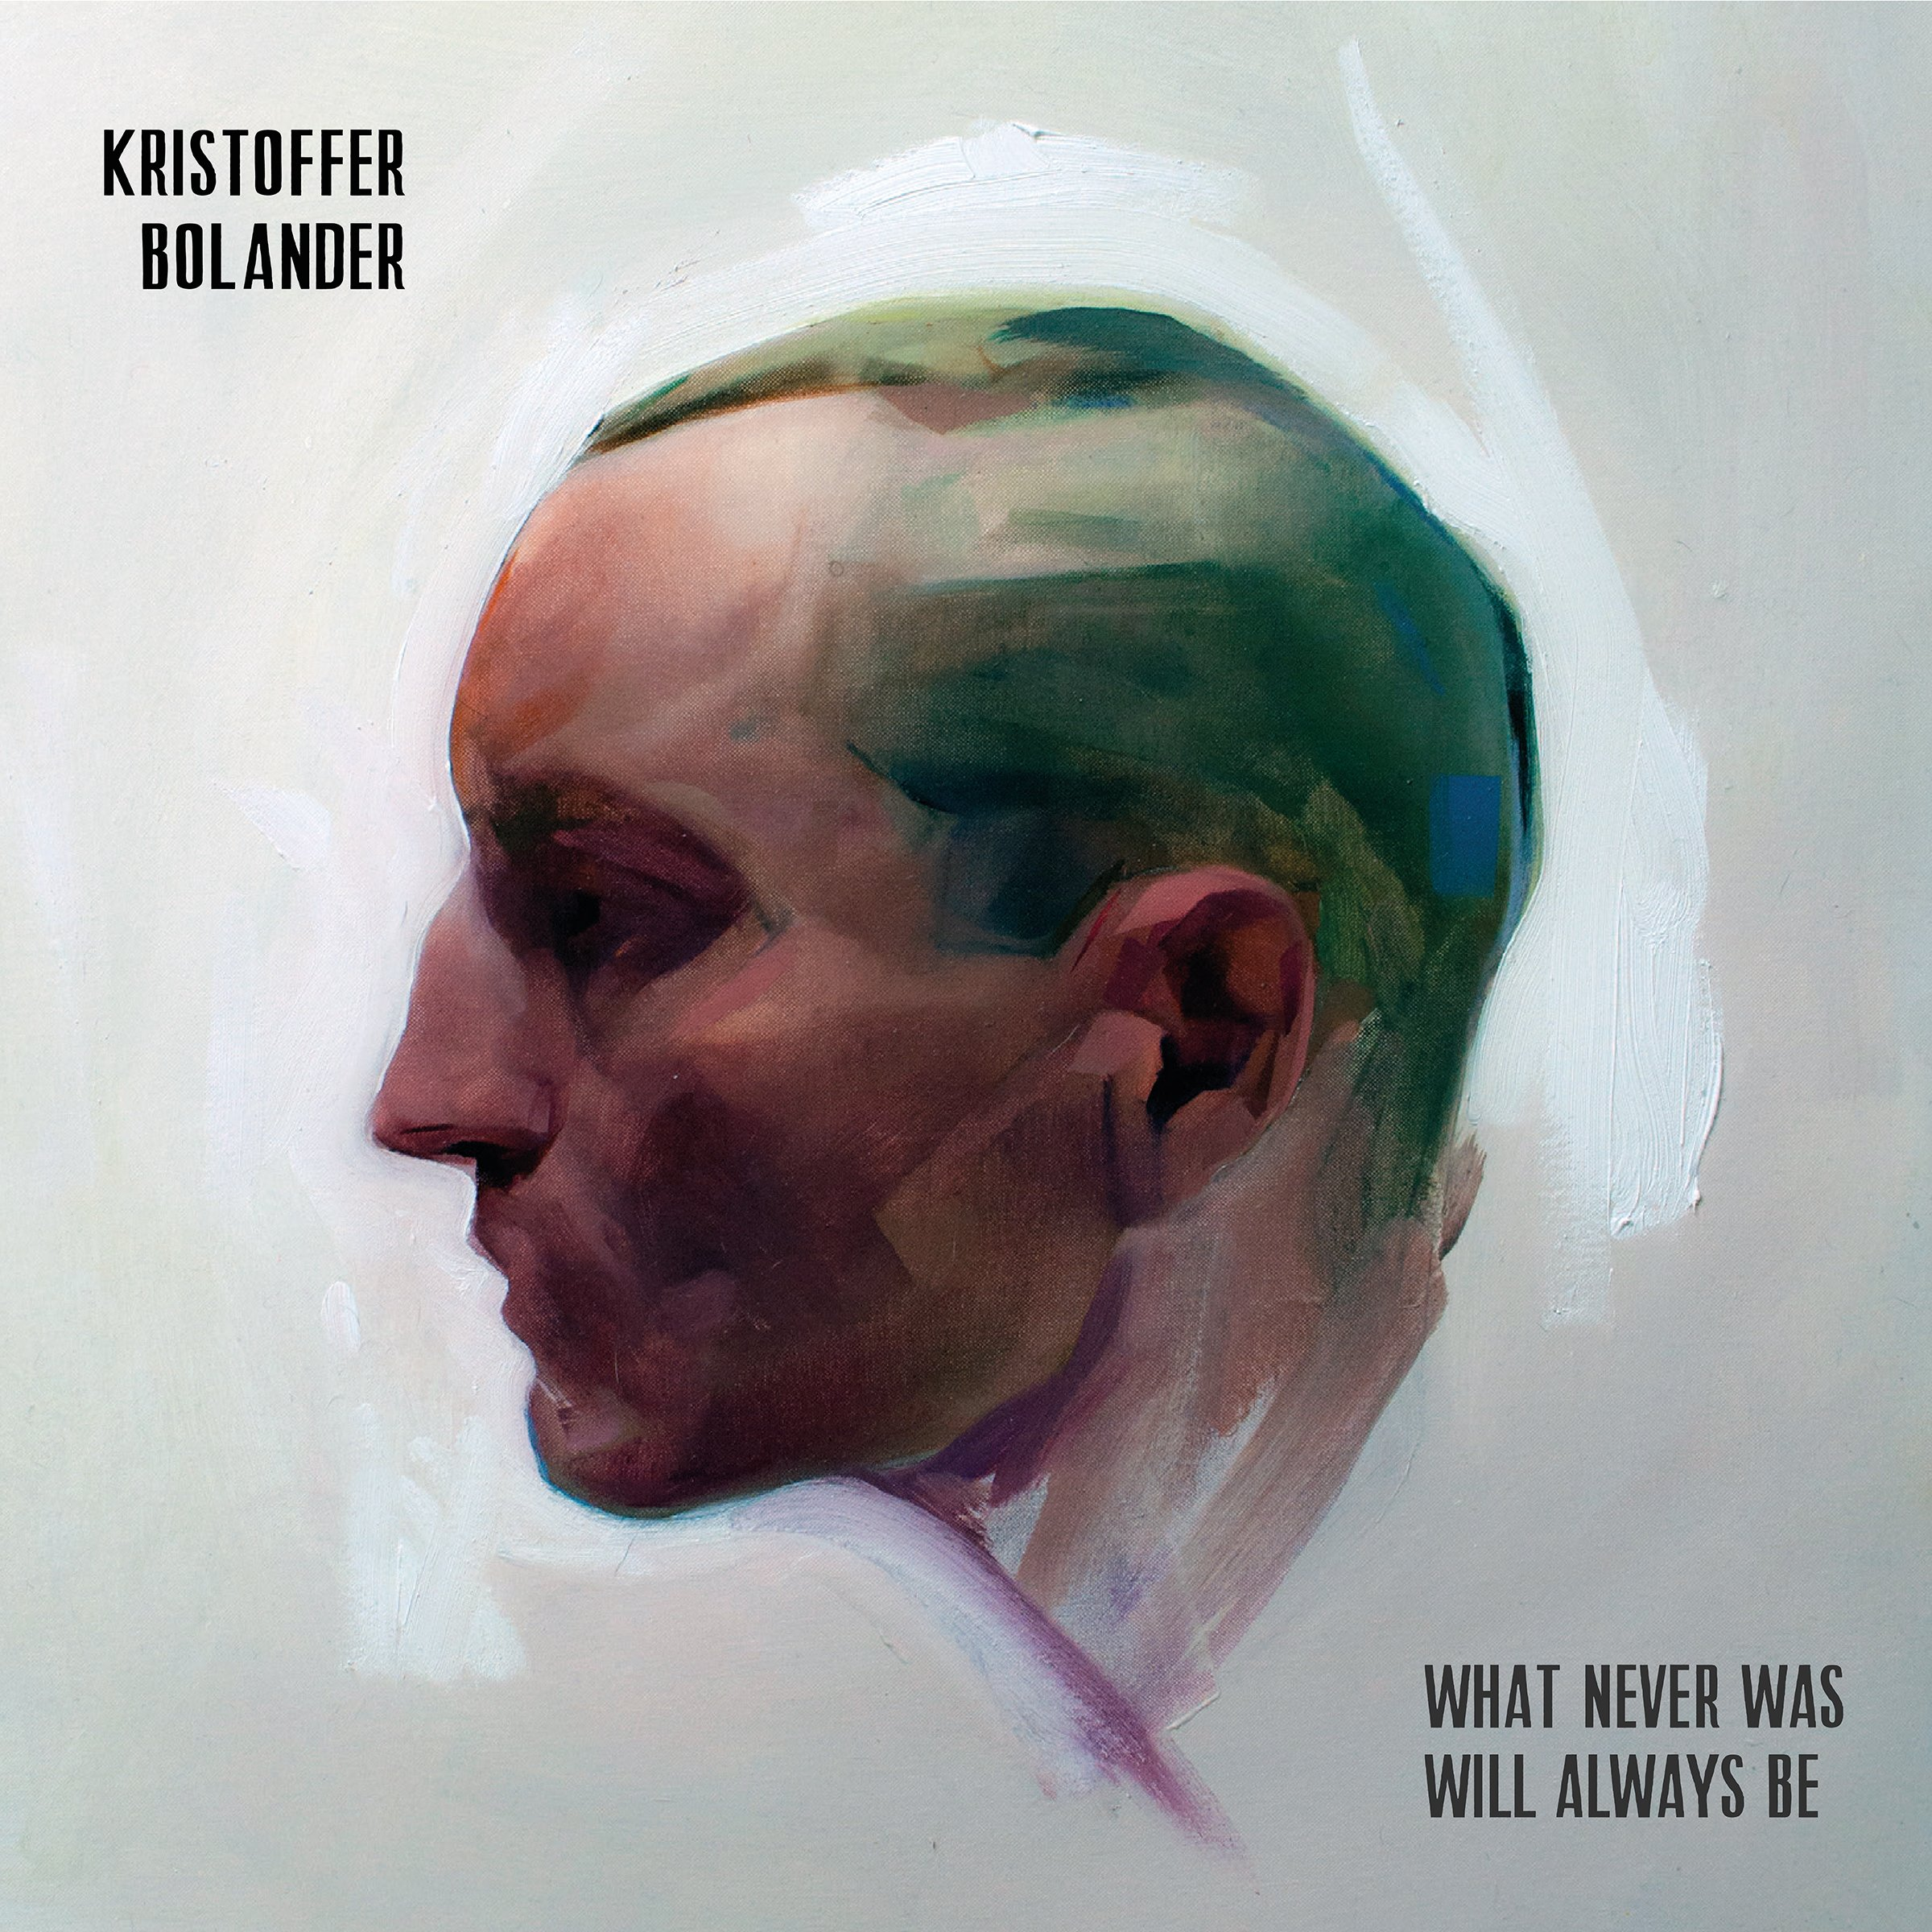 Vinilo : KRISTOFFER BOLANDER - What Never Was Will Always Be (With CD)